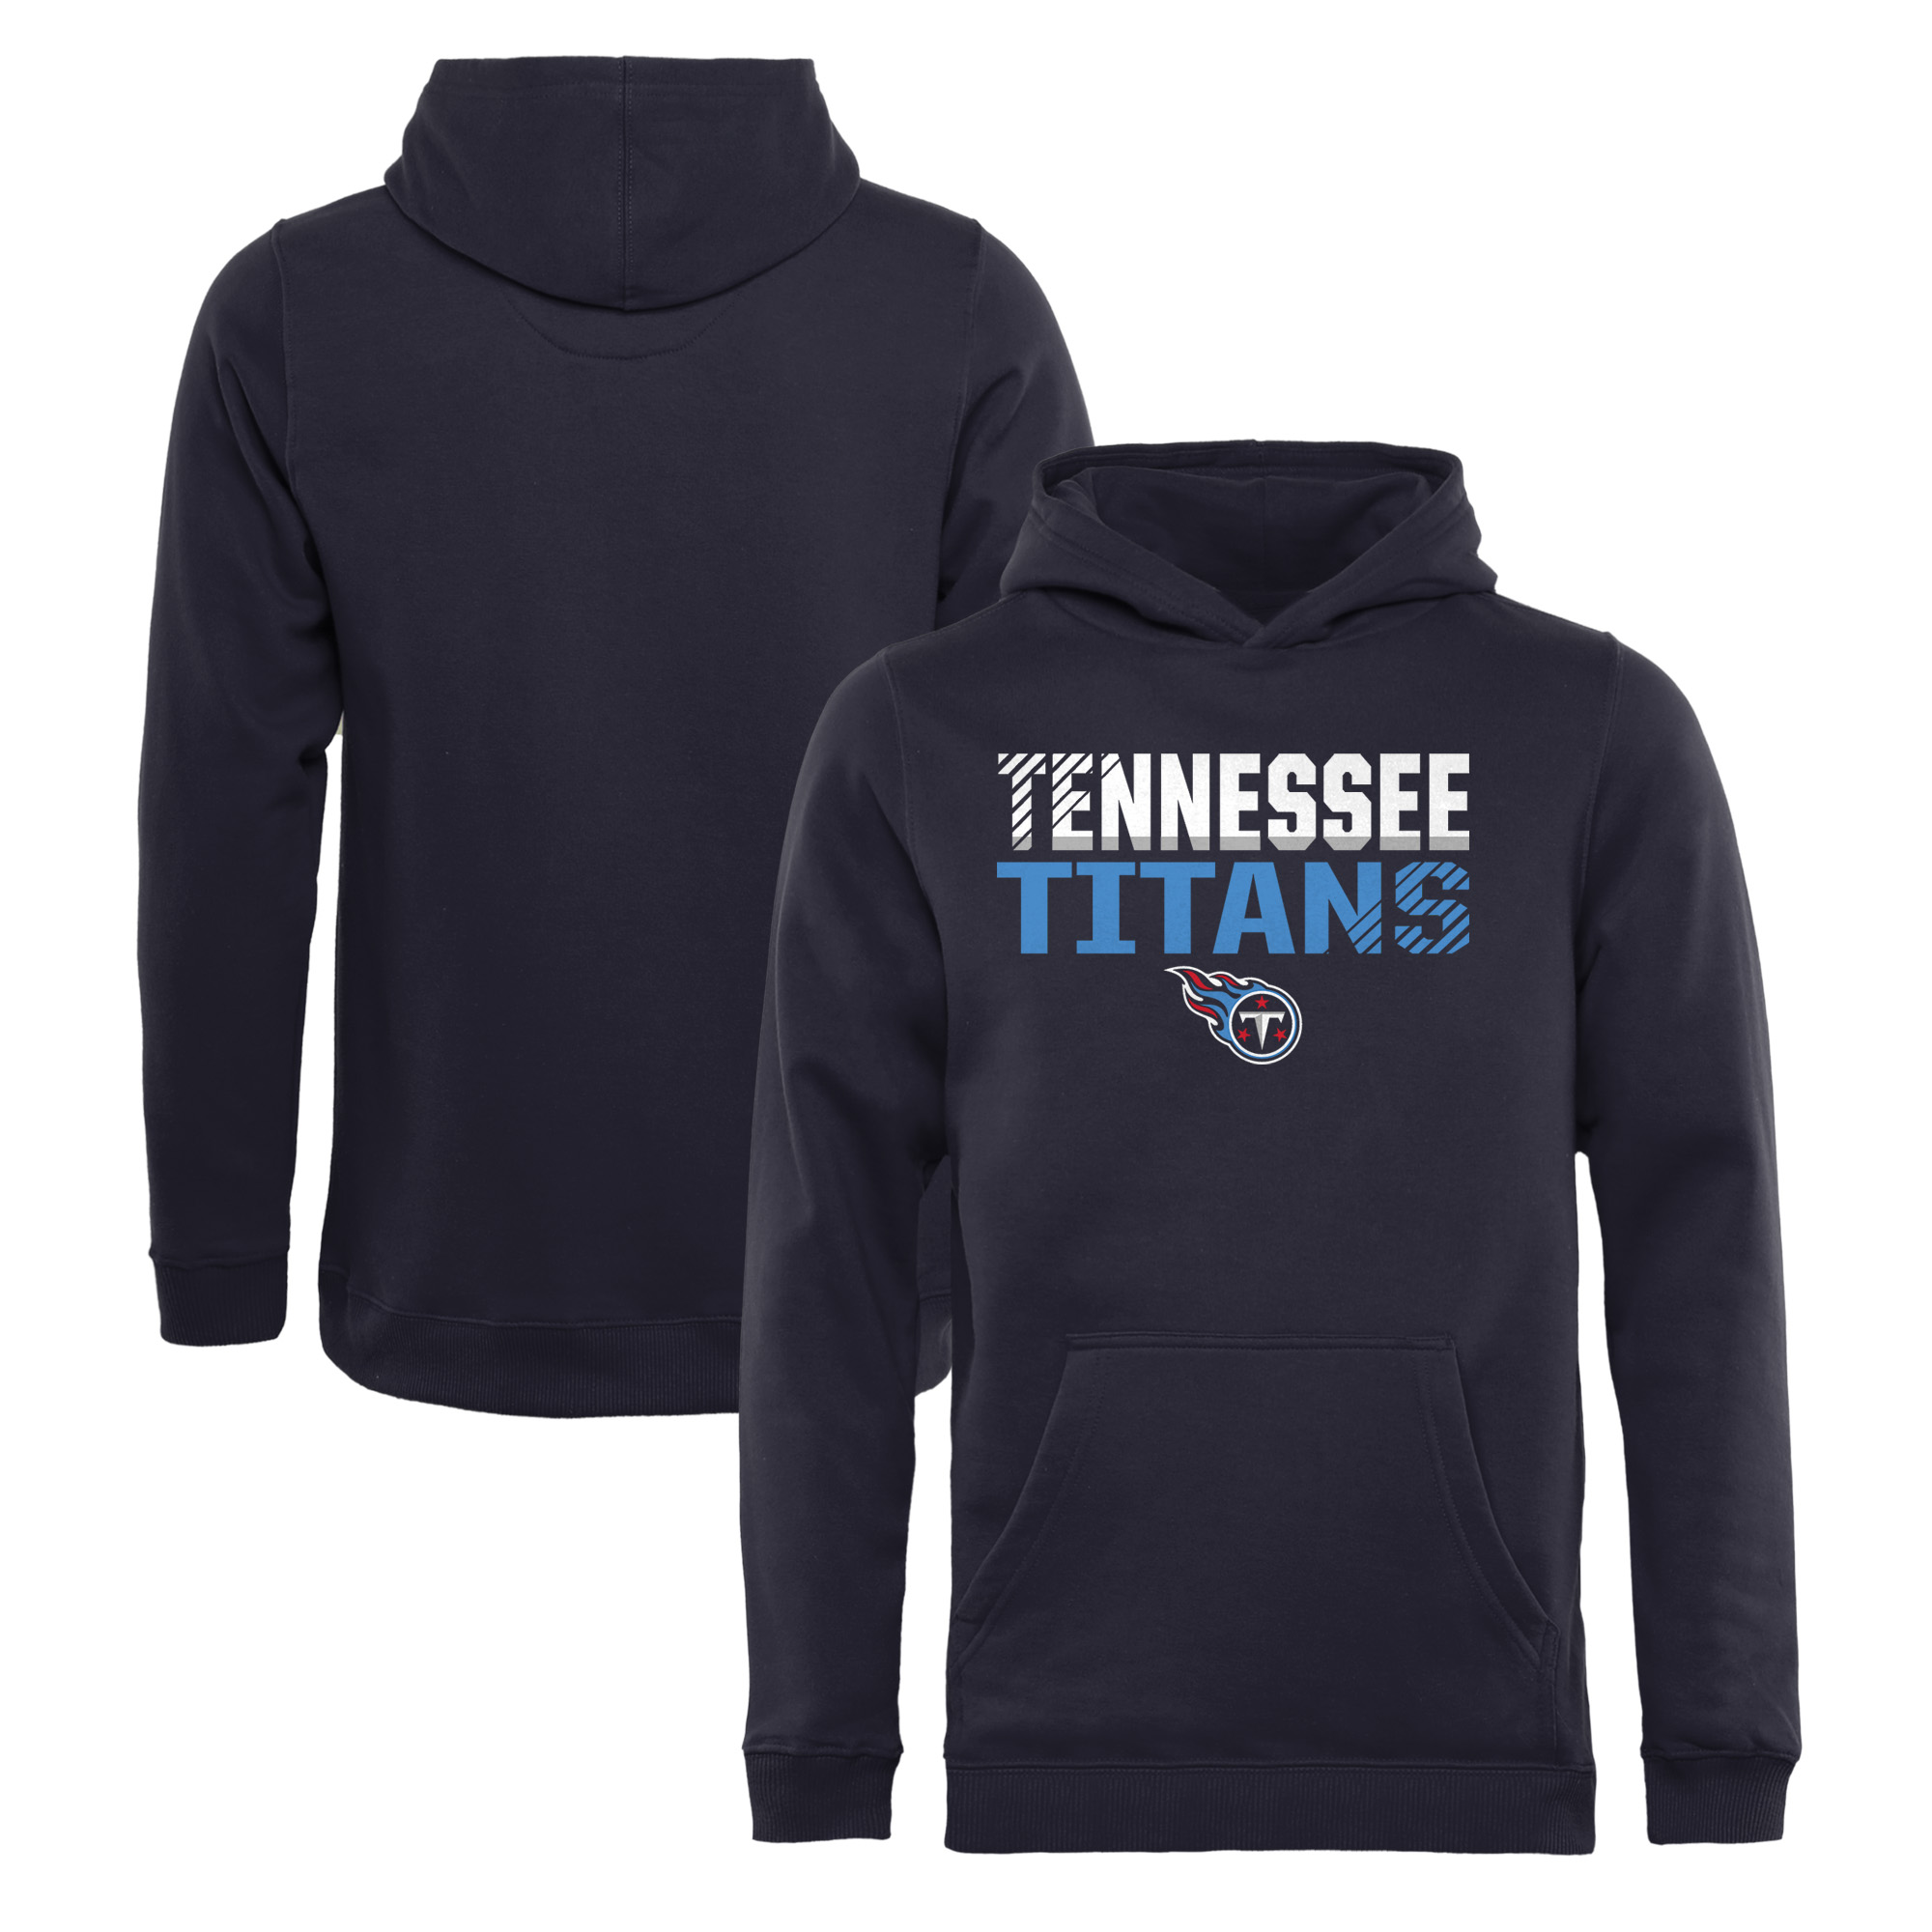 Tennessee Titans NFL Pro Line by Fanatics Branded Youth Iconic Collection Fade Out Pullover Hoodie - Navy